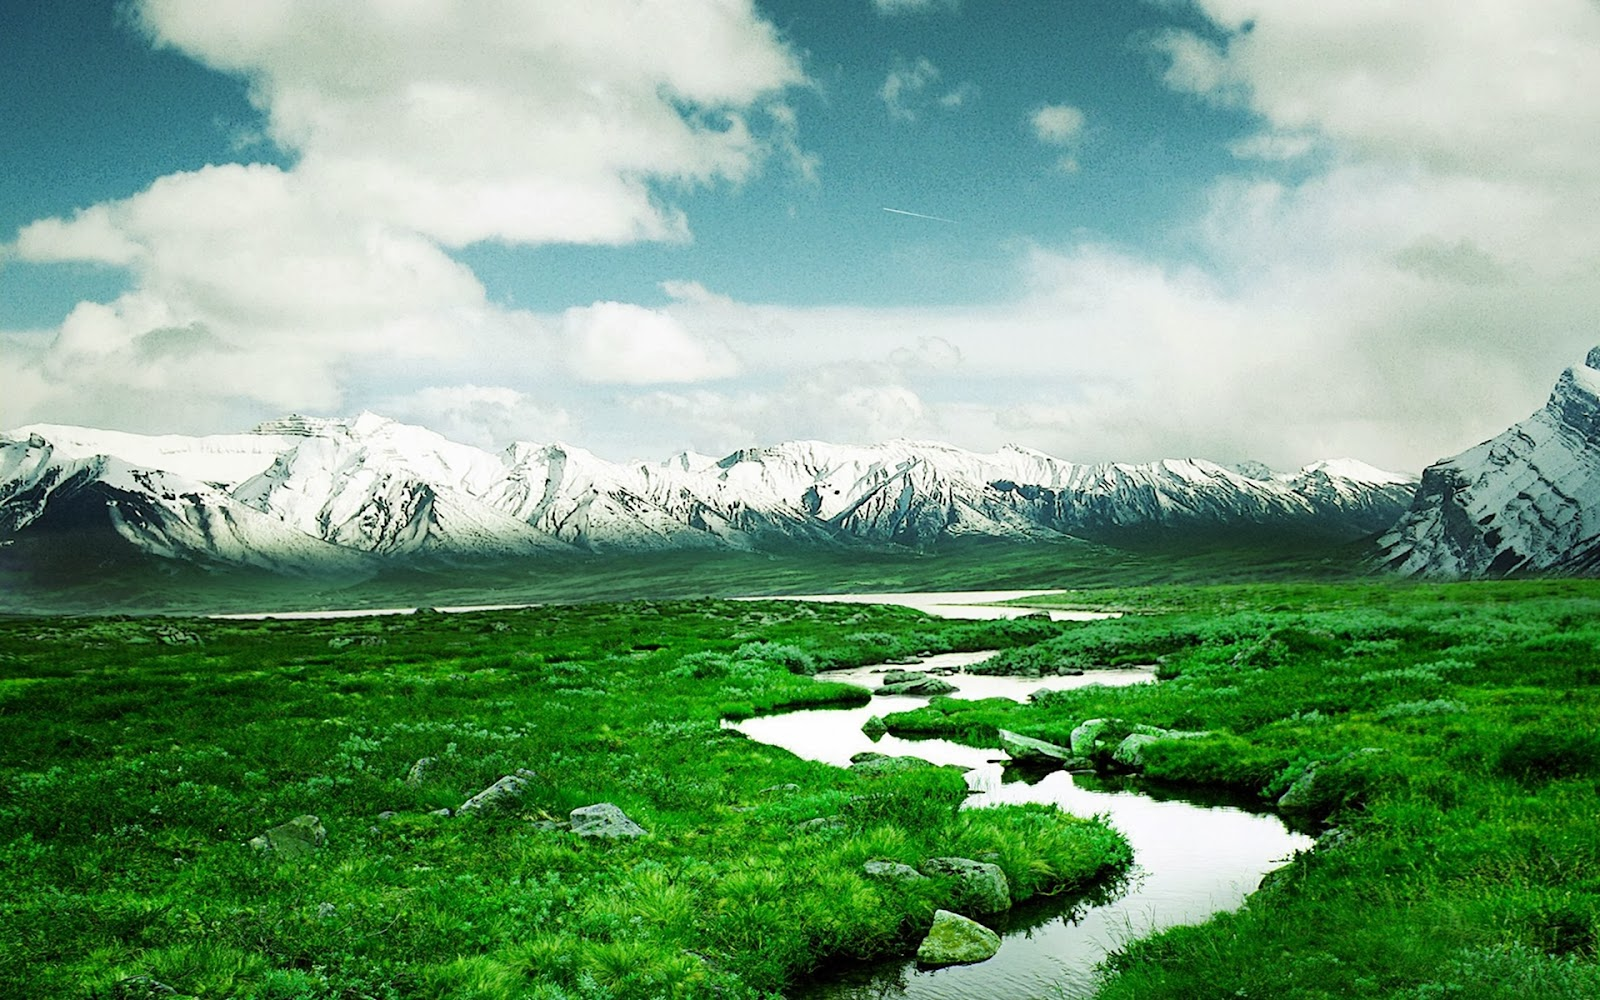 Beautiful Green Grass Mountains Nature Full HD Desktop Backgrounds Images Wallpapers Free